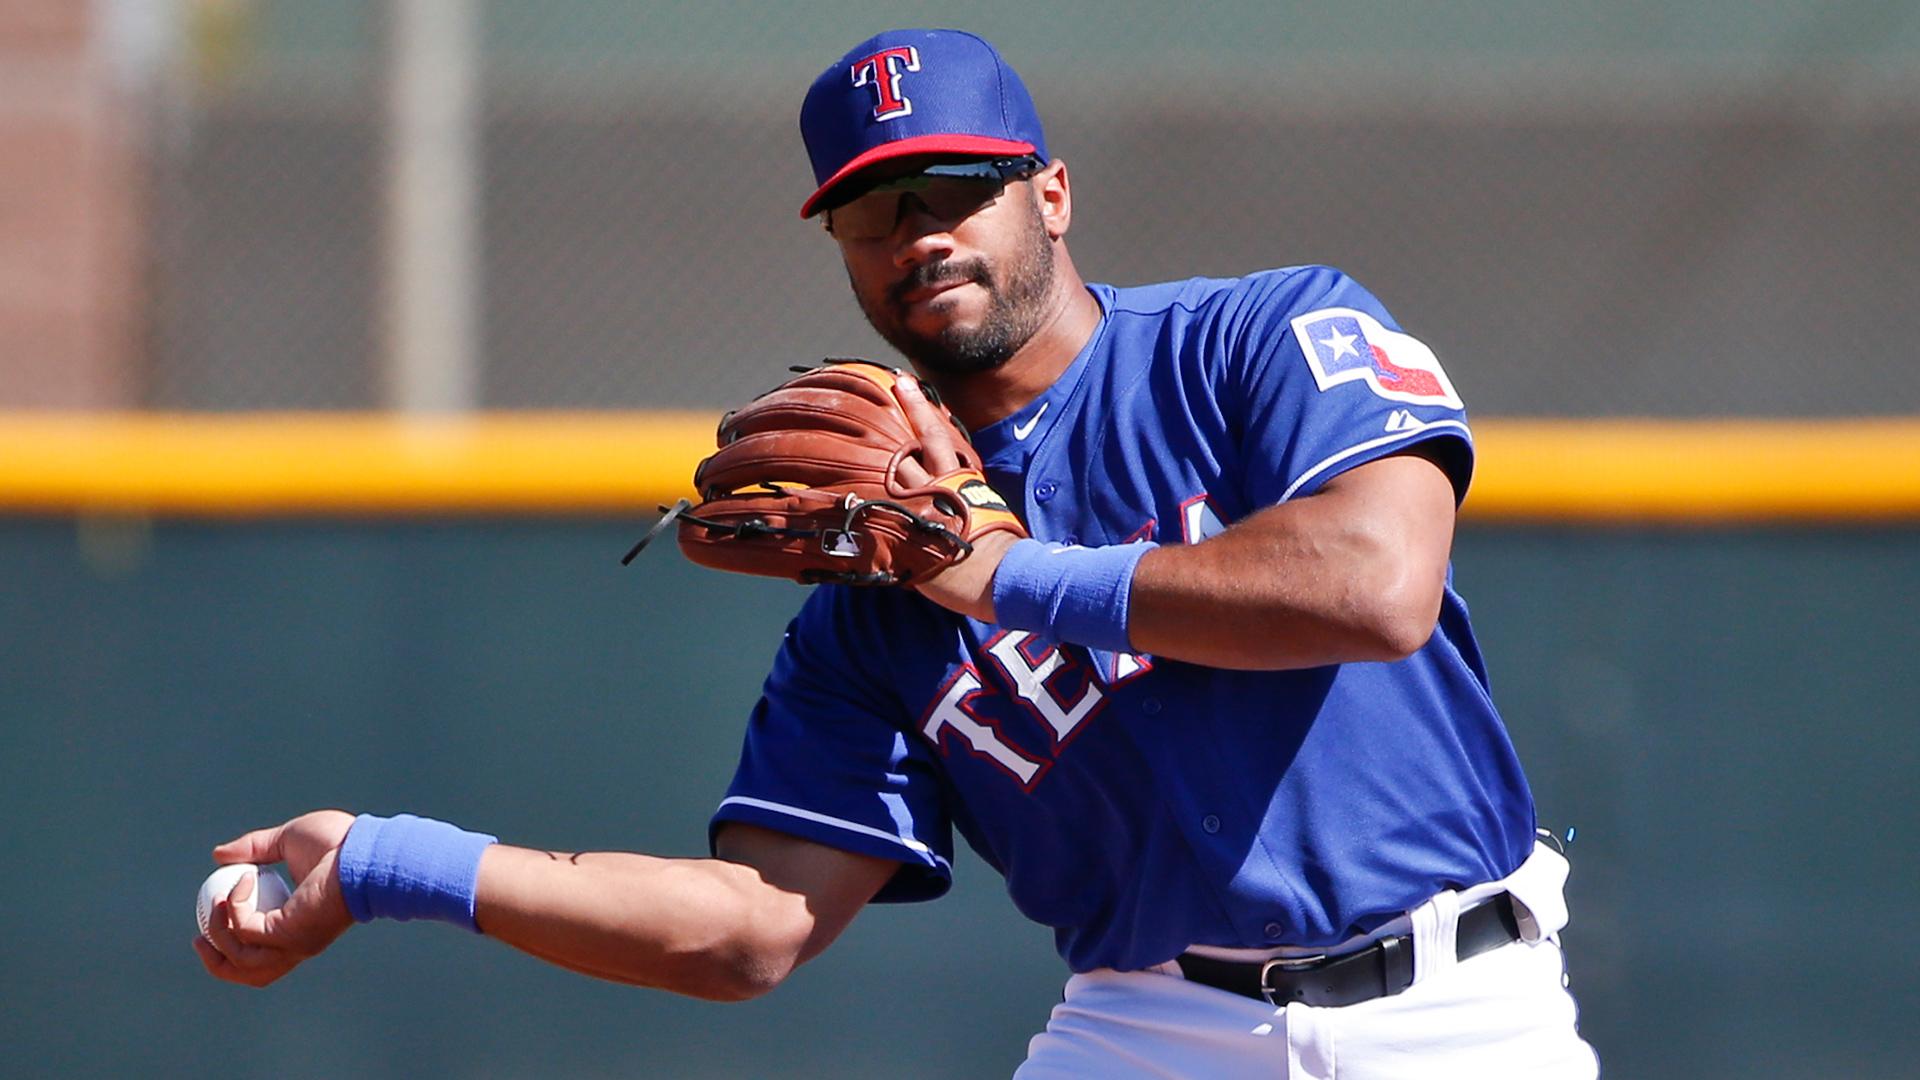 Seattle Seahawks quarterback Russell Wilson makes a pivot at second base as he rehearses his throw during infield practice prior to a Rangers spring training baseball game against the San Diego Padres Saturday, March 28, 2015, in Surprise, Ariz.  (AP Photo/Lenny Ignelzi)